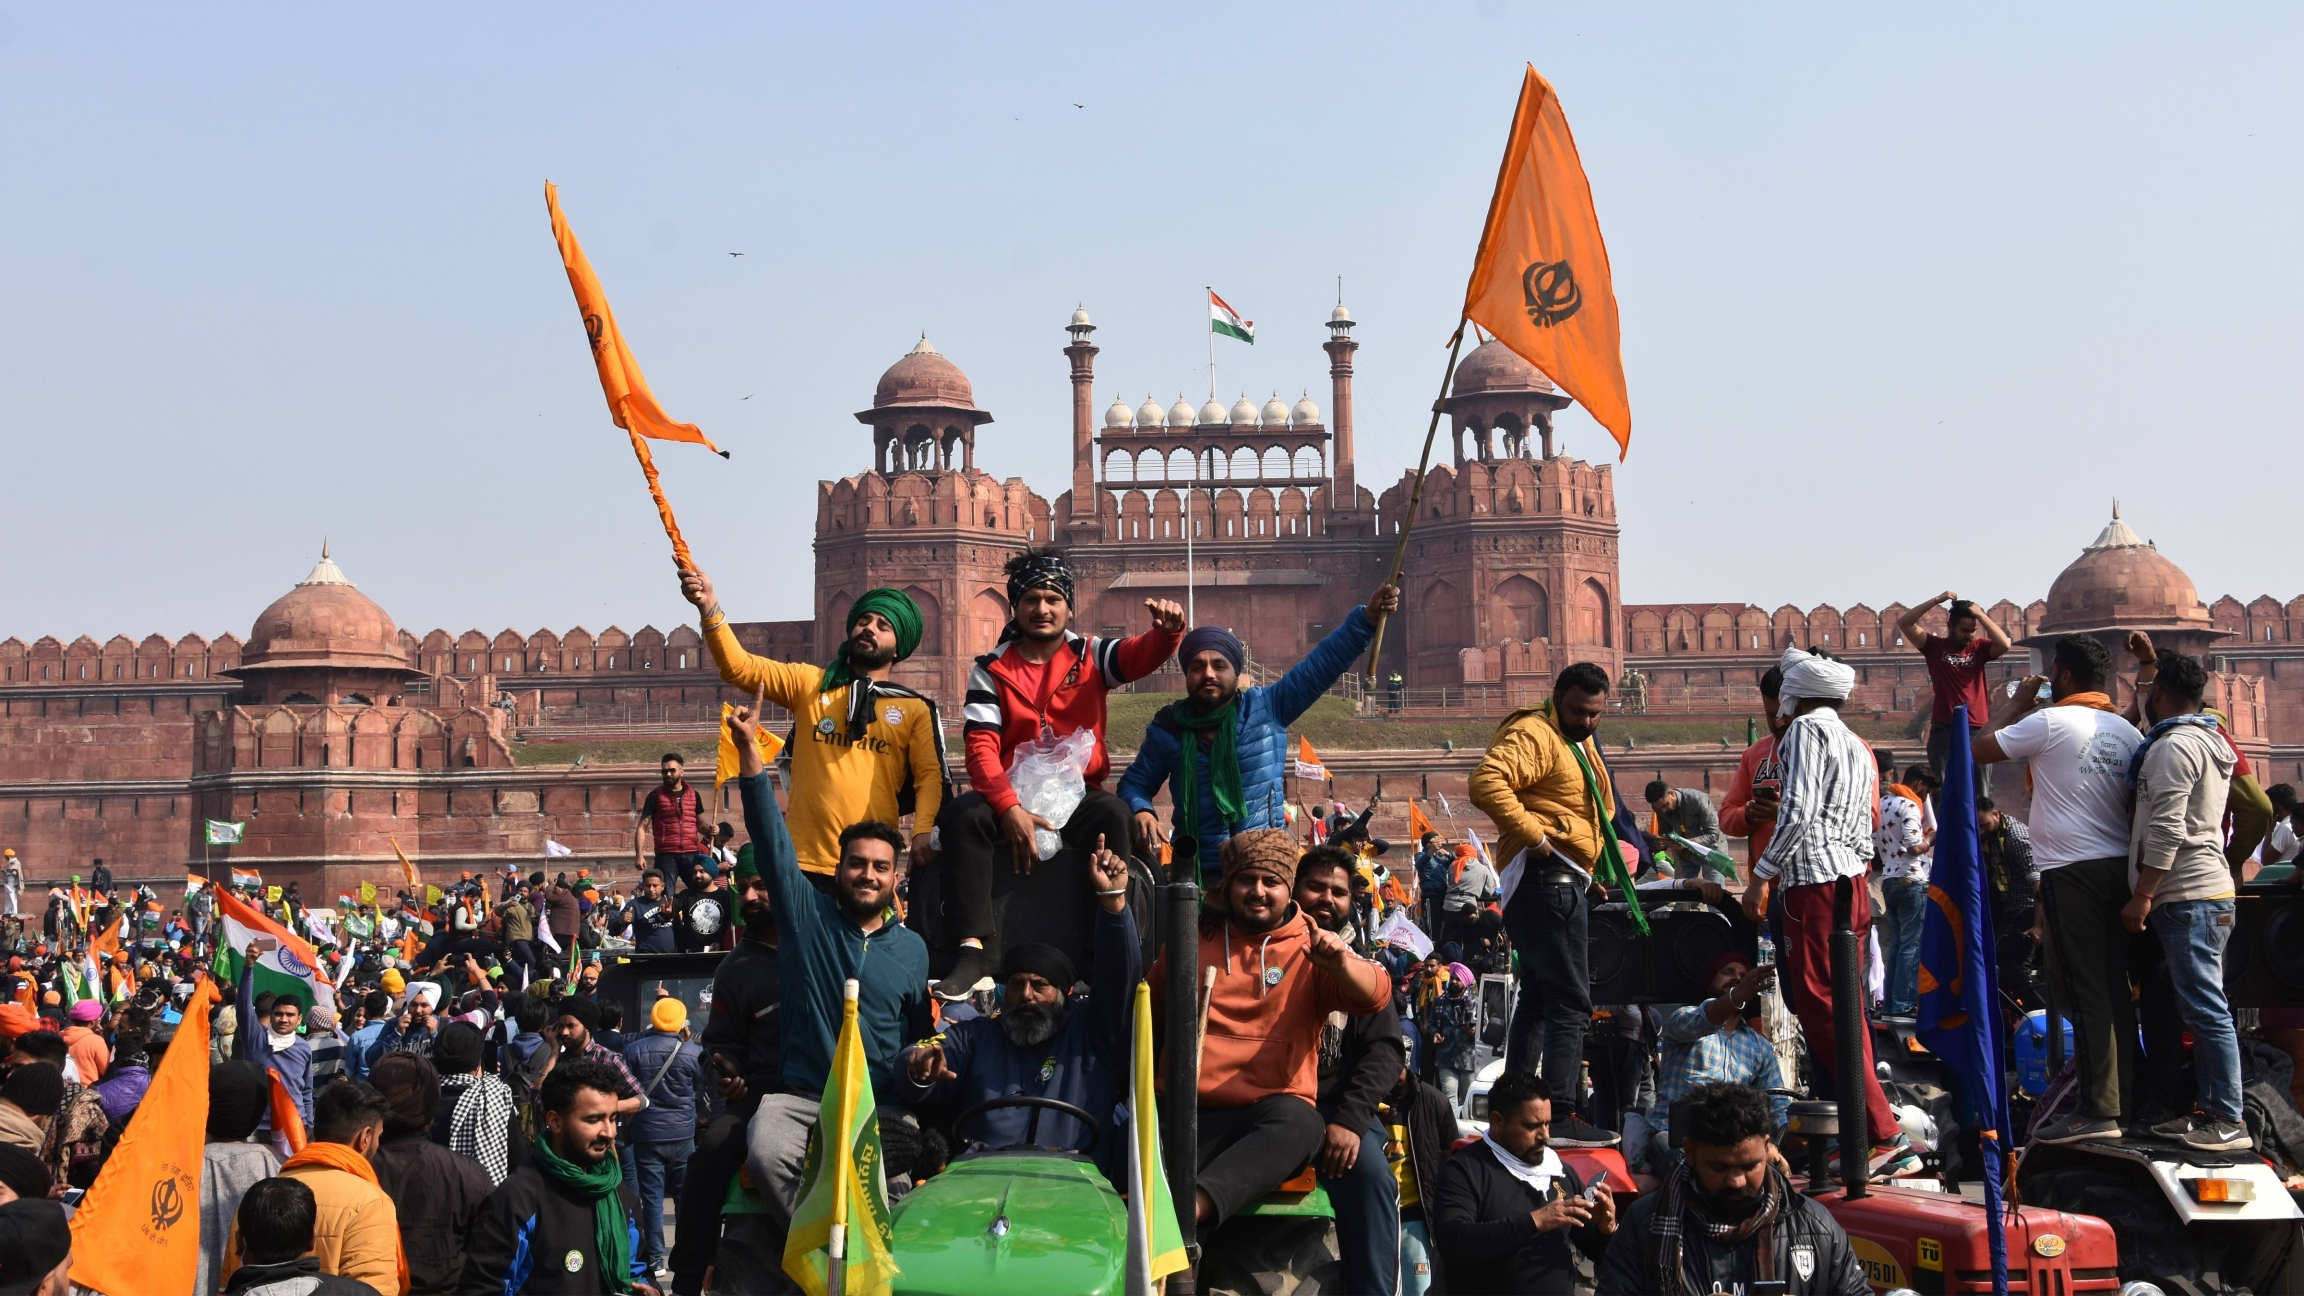 Sikhs wave the Nishan Sahib, a Sikh religious flag, as they arrive at the historic Red Fort monument in New Delhi, India, on Tuesday, Jan. 26, 2021.